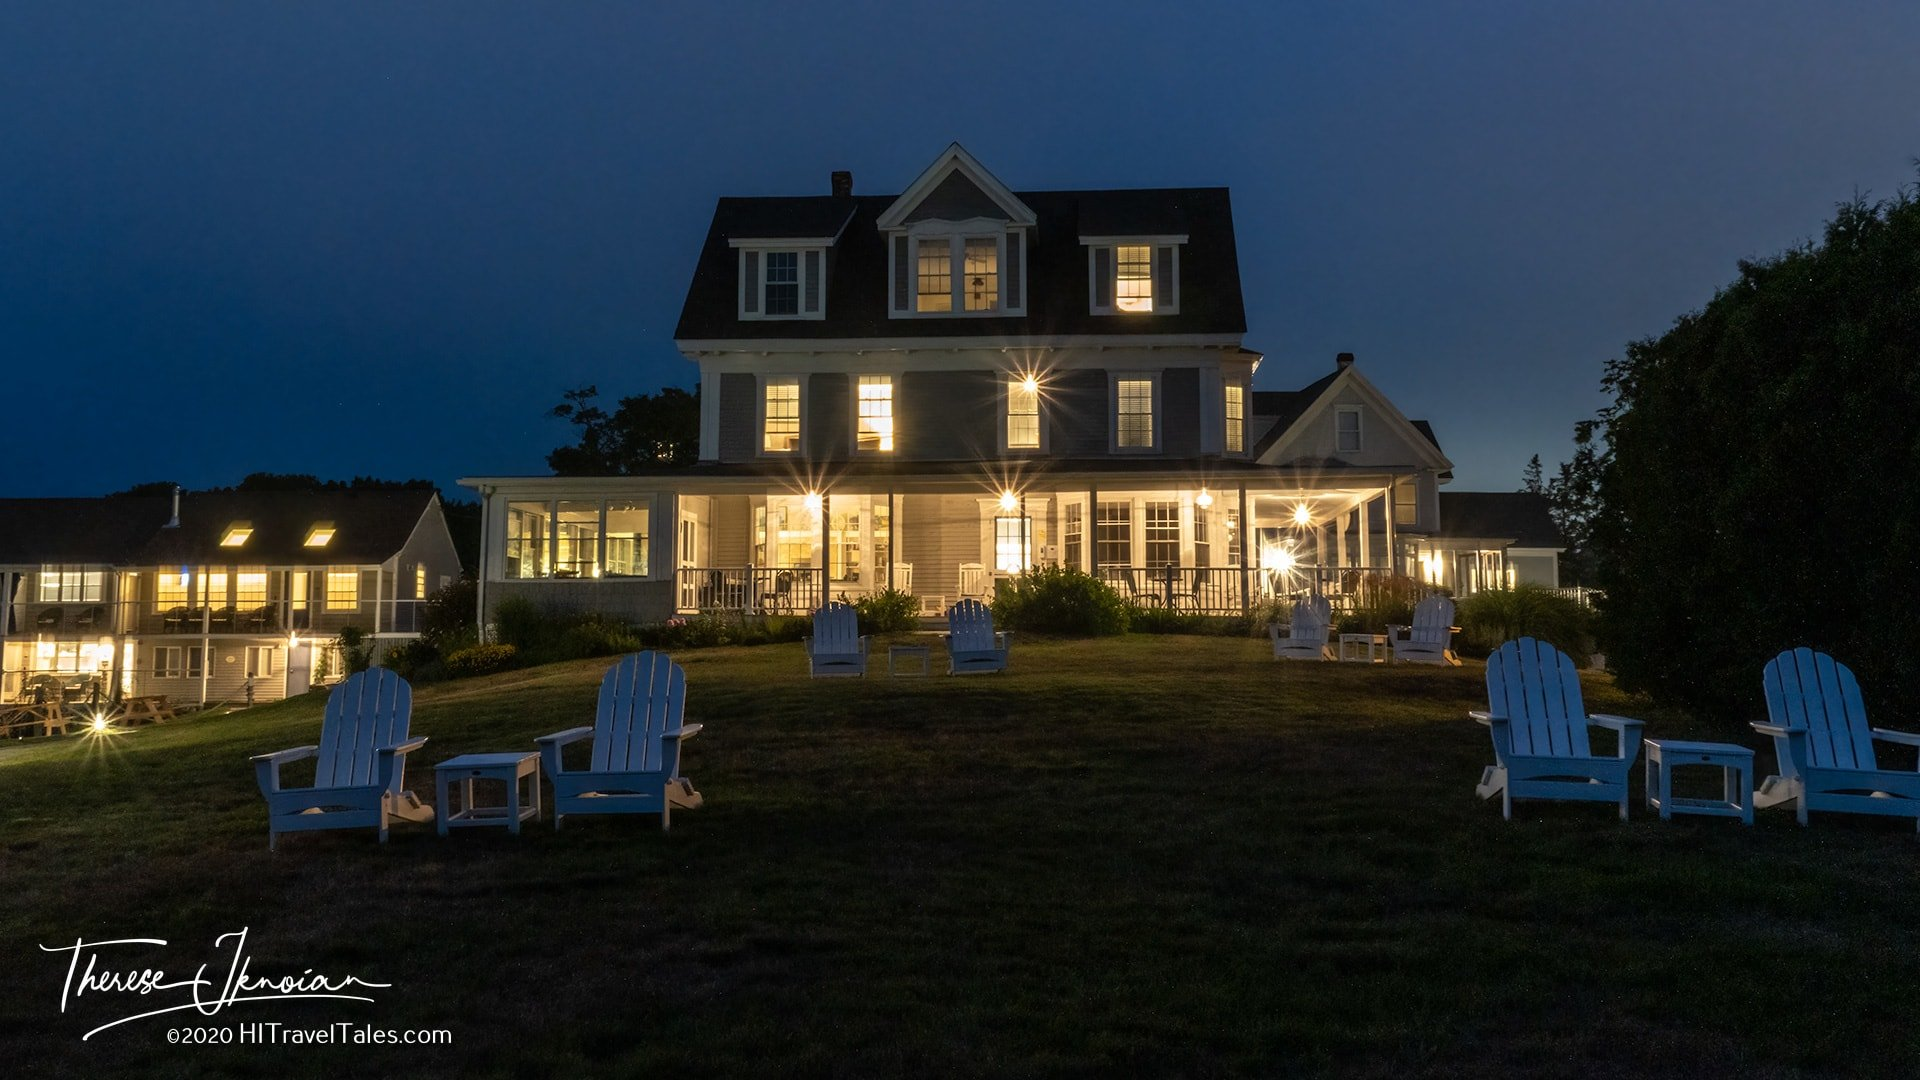 Topside Inn Best Hotel In Boothbay Harbor Night